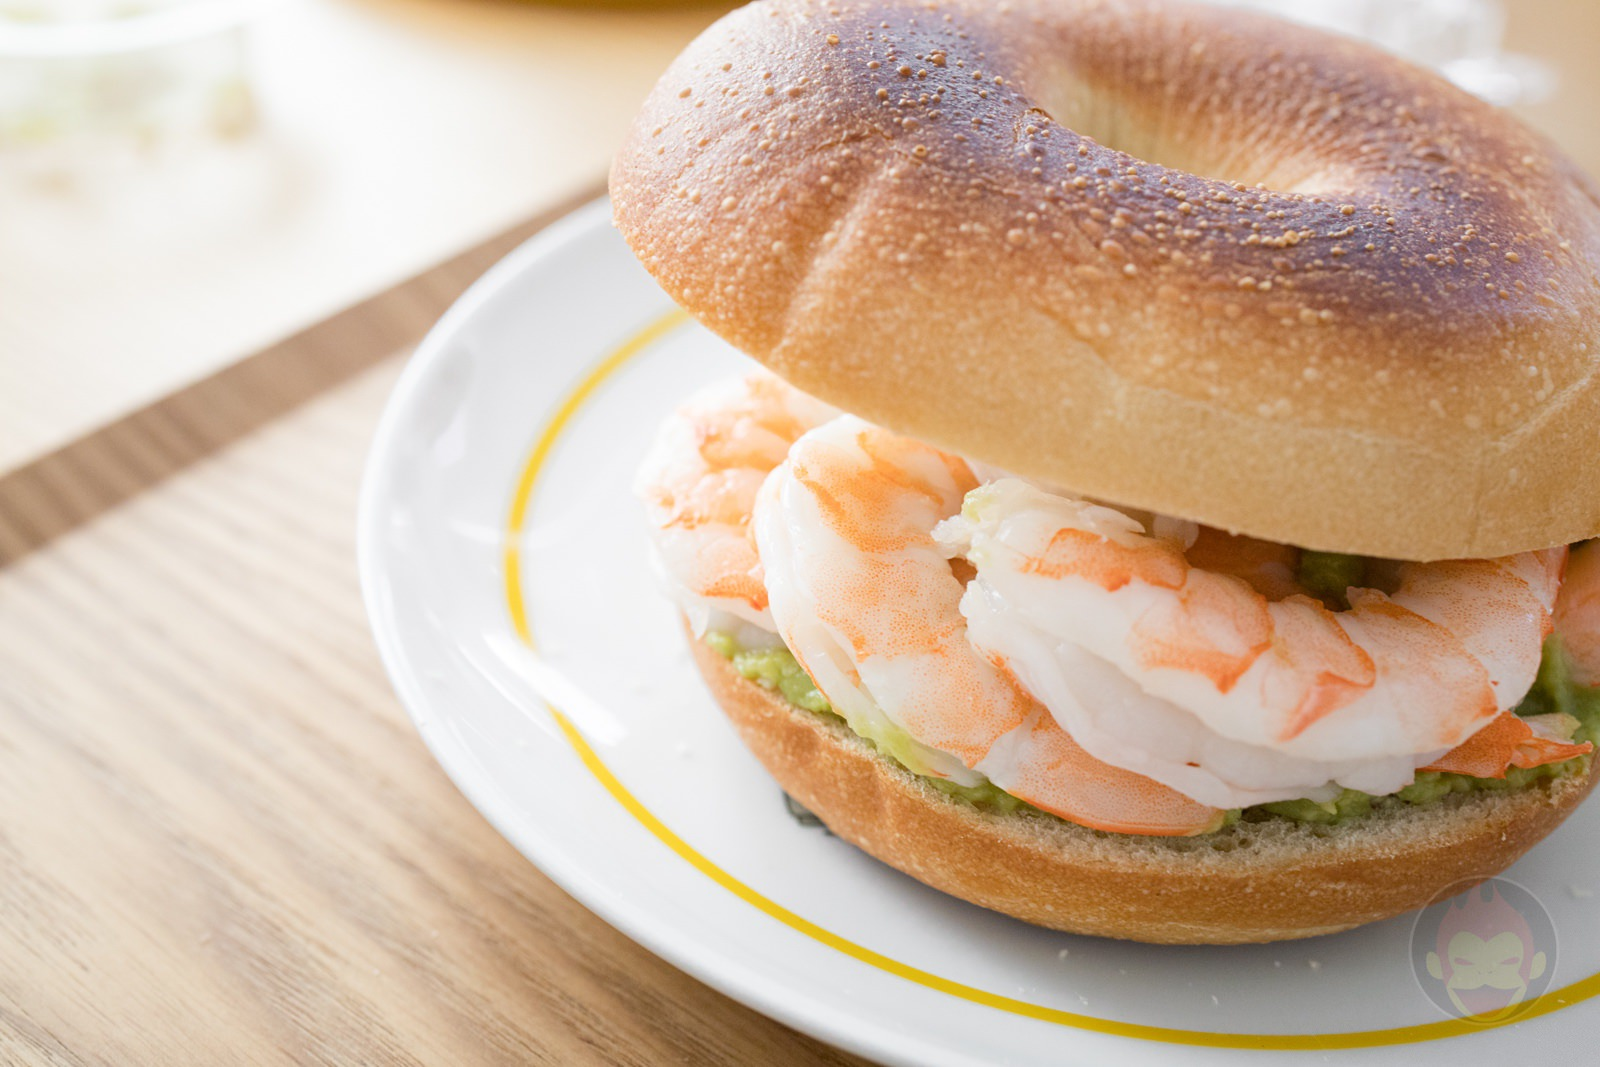 Costco Shrimp Avocado Guacamole Bagel Sandwich 12